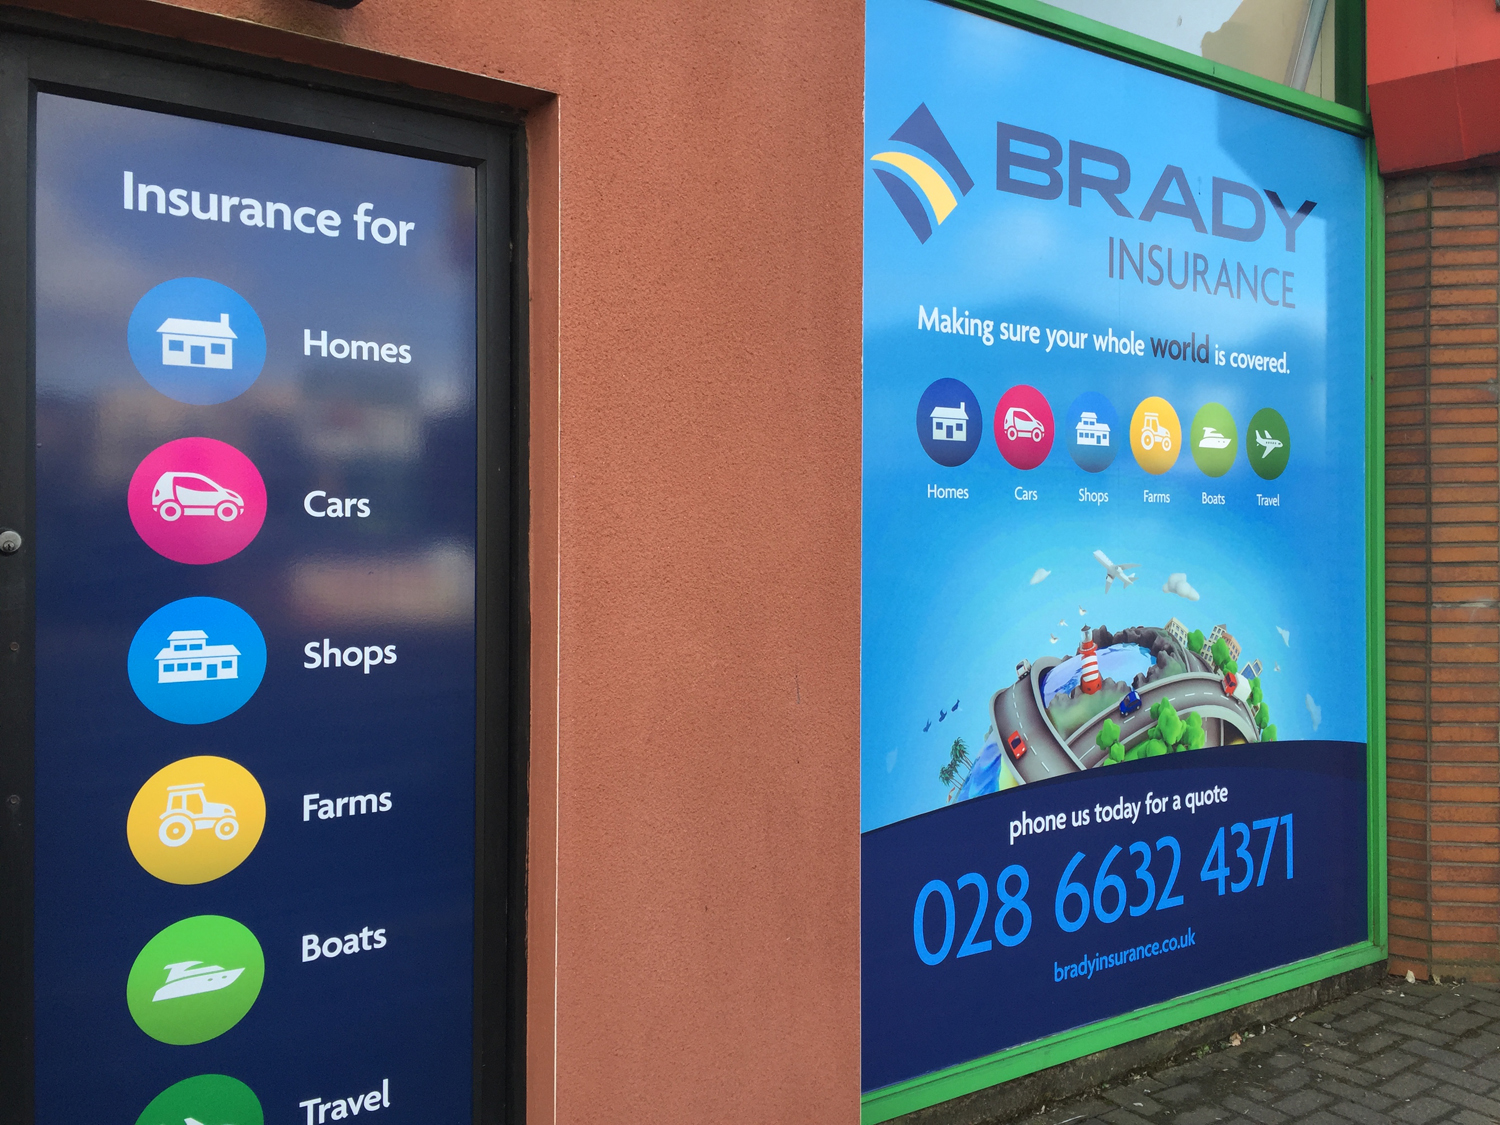 New Signage And Window Graphics For Brady Insurance Le